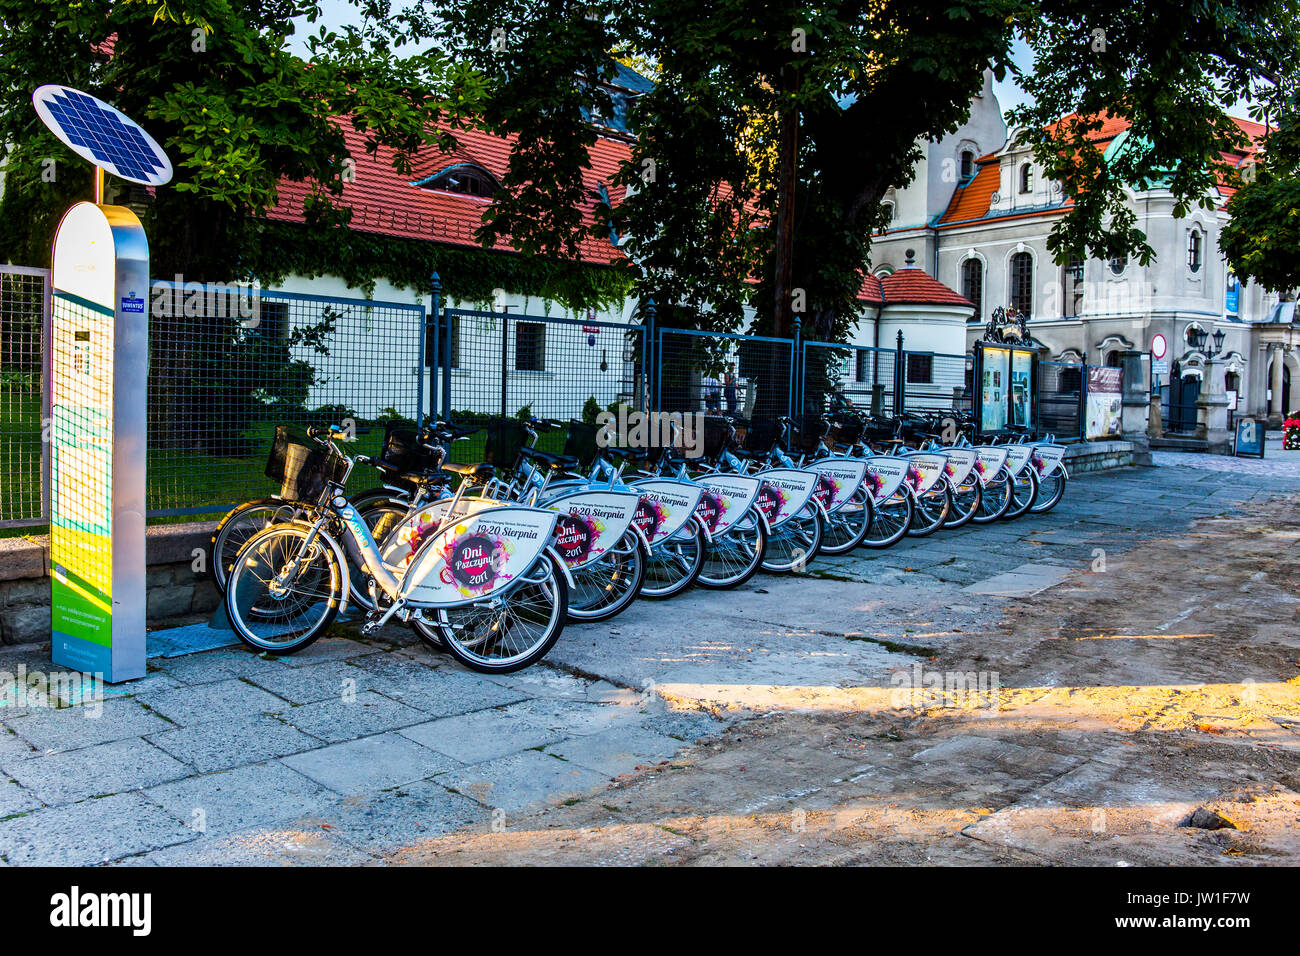 Bicycles in a row prepared for rent near the square in Pszczyna, Poland. Stock Photo